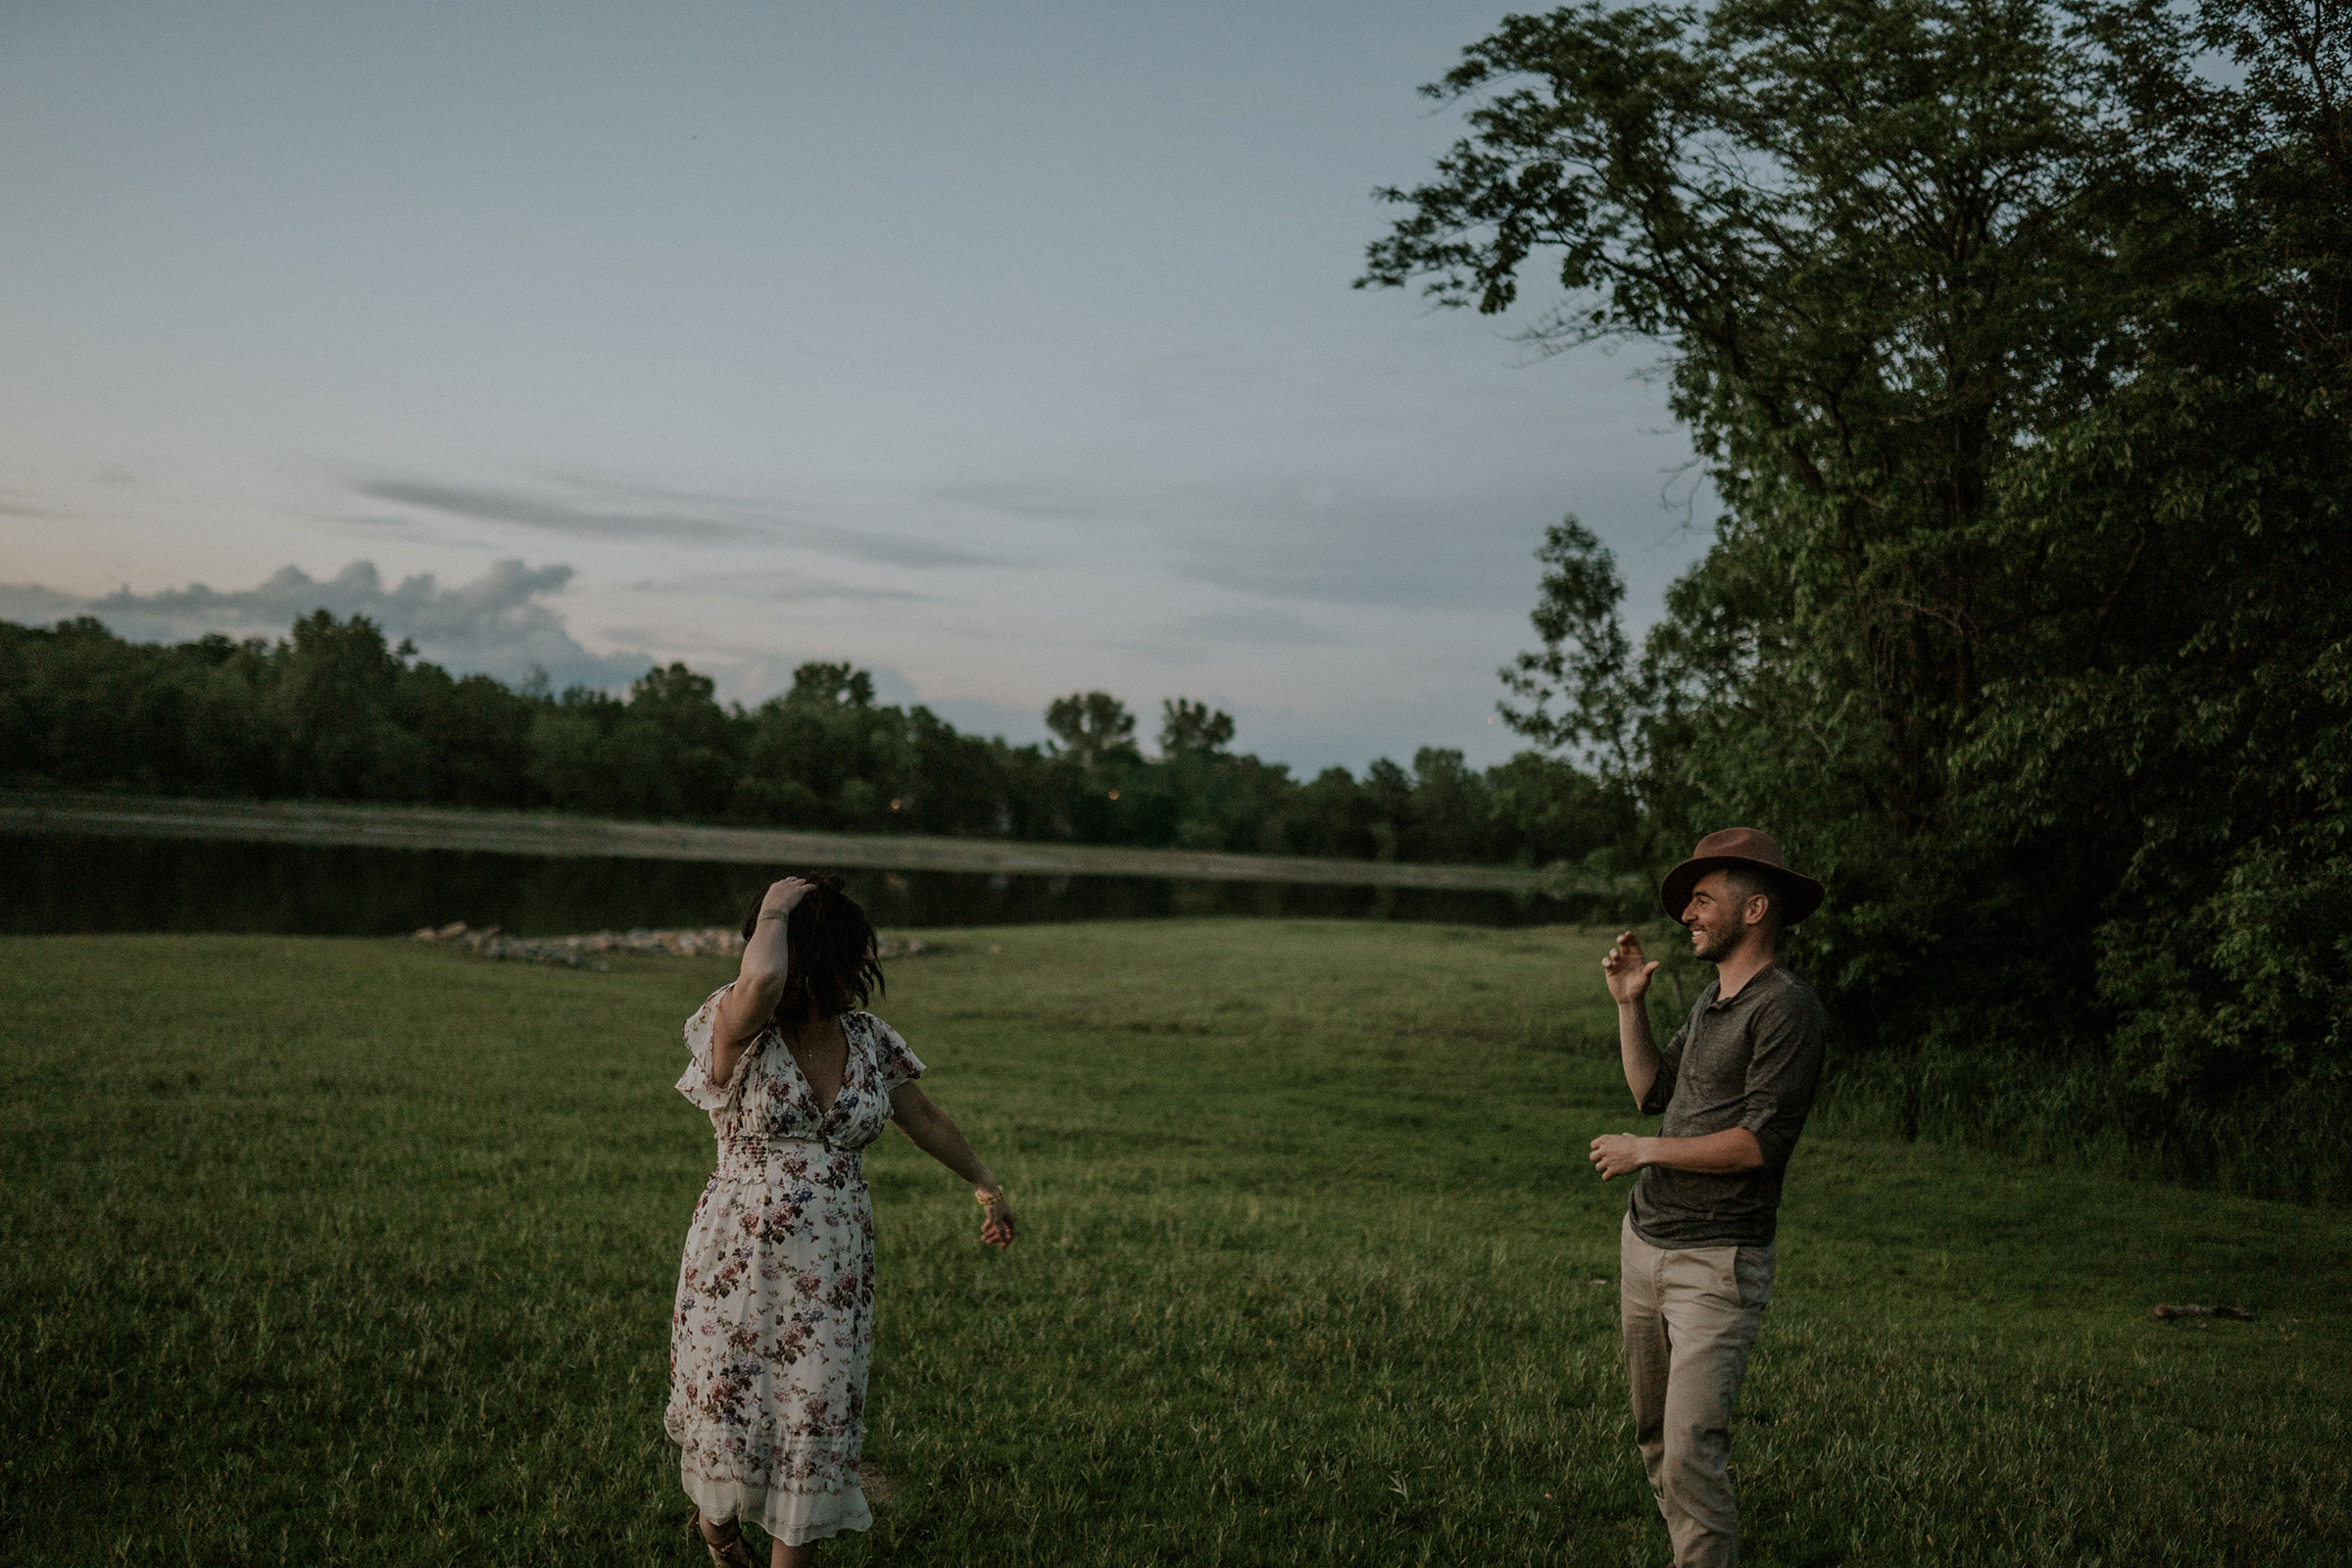 mom-to-be-walking-with-husband-laughing-playing-with-hat-desmoines-iowa-raelyn-ramey-photography.jpg